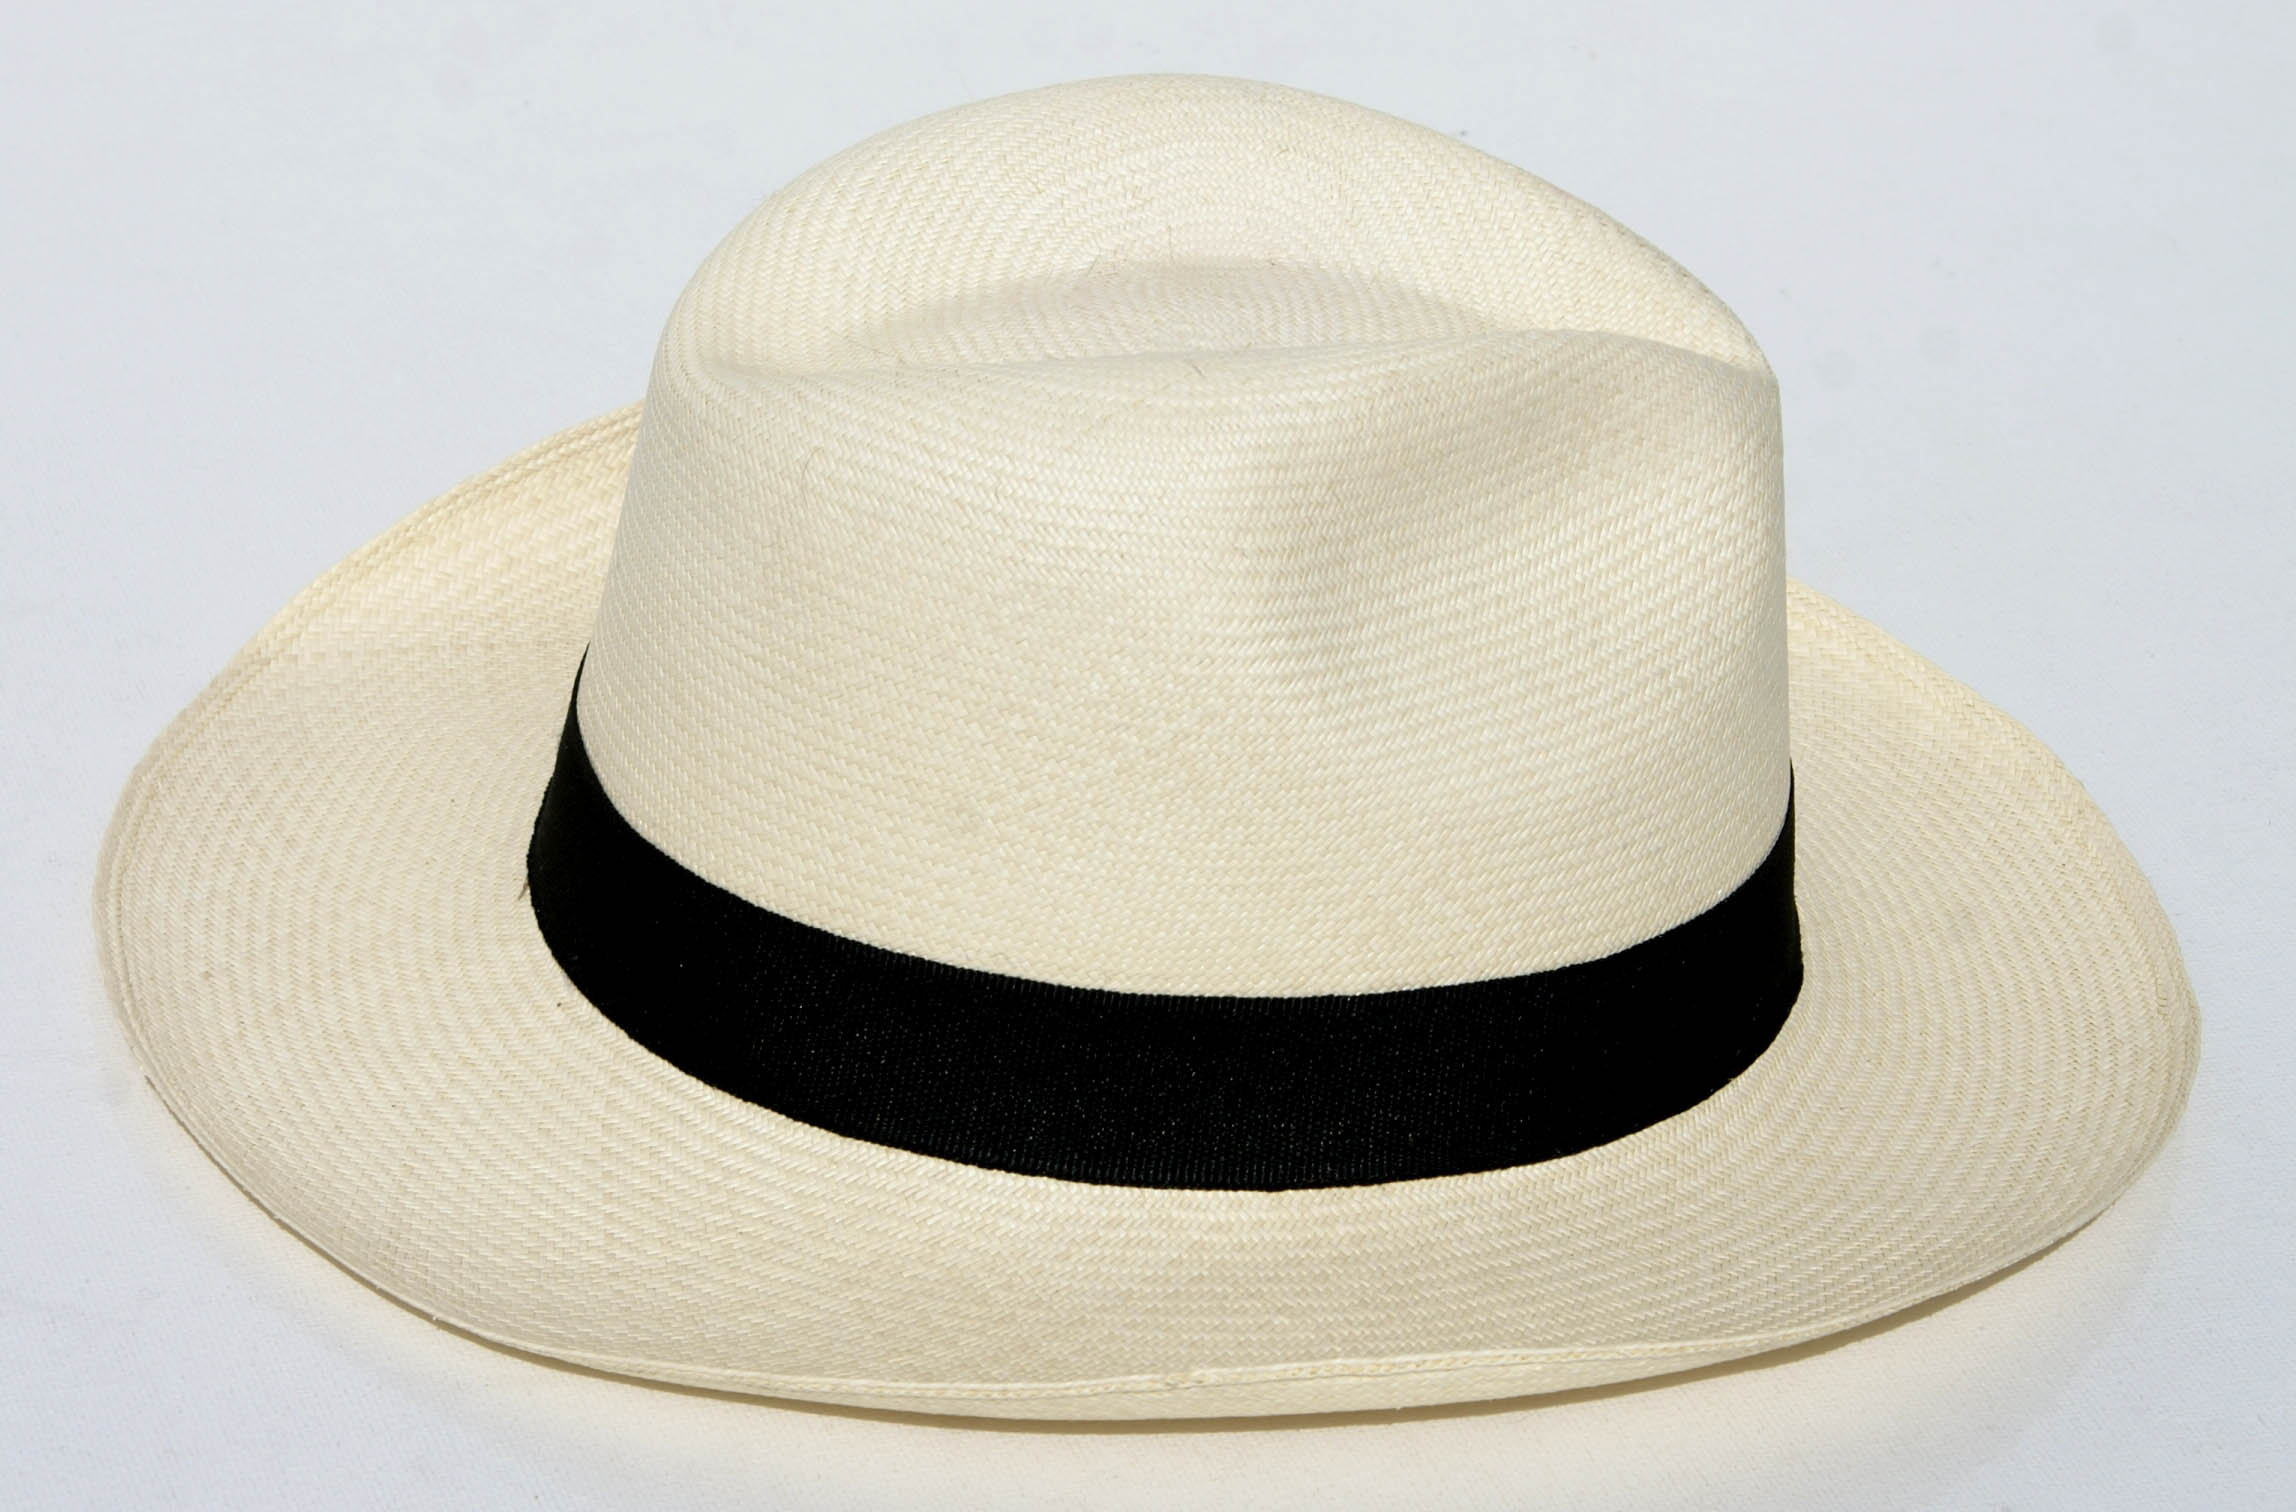 White Original Panama Hat, Summer Hats for Men, Mens Beach ...